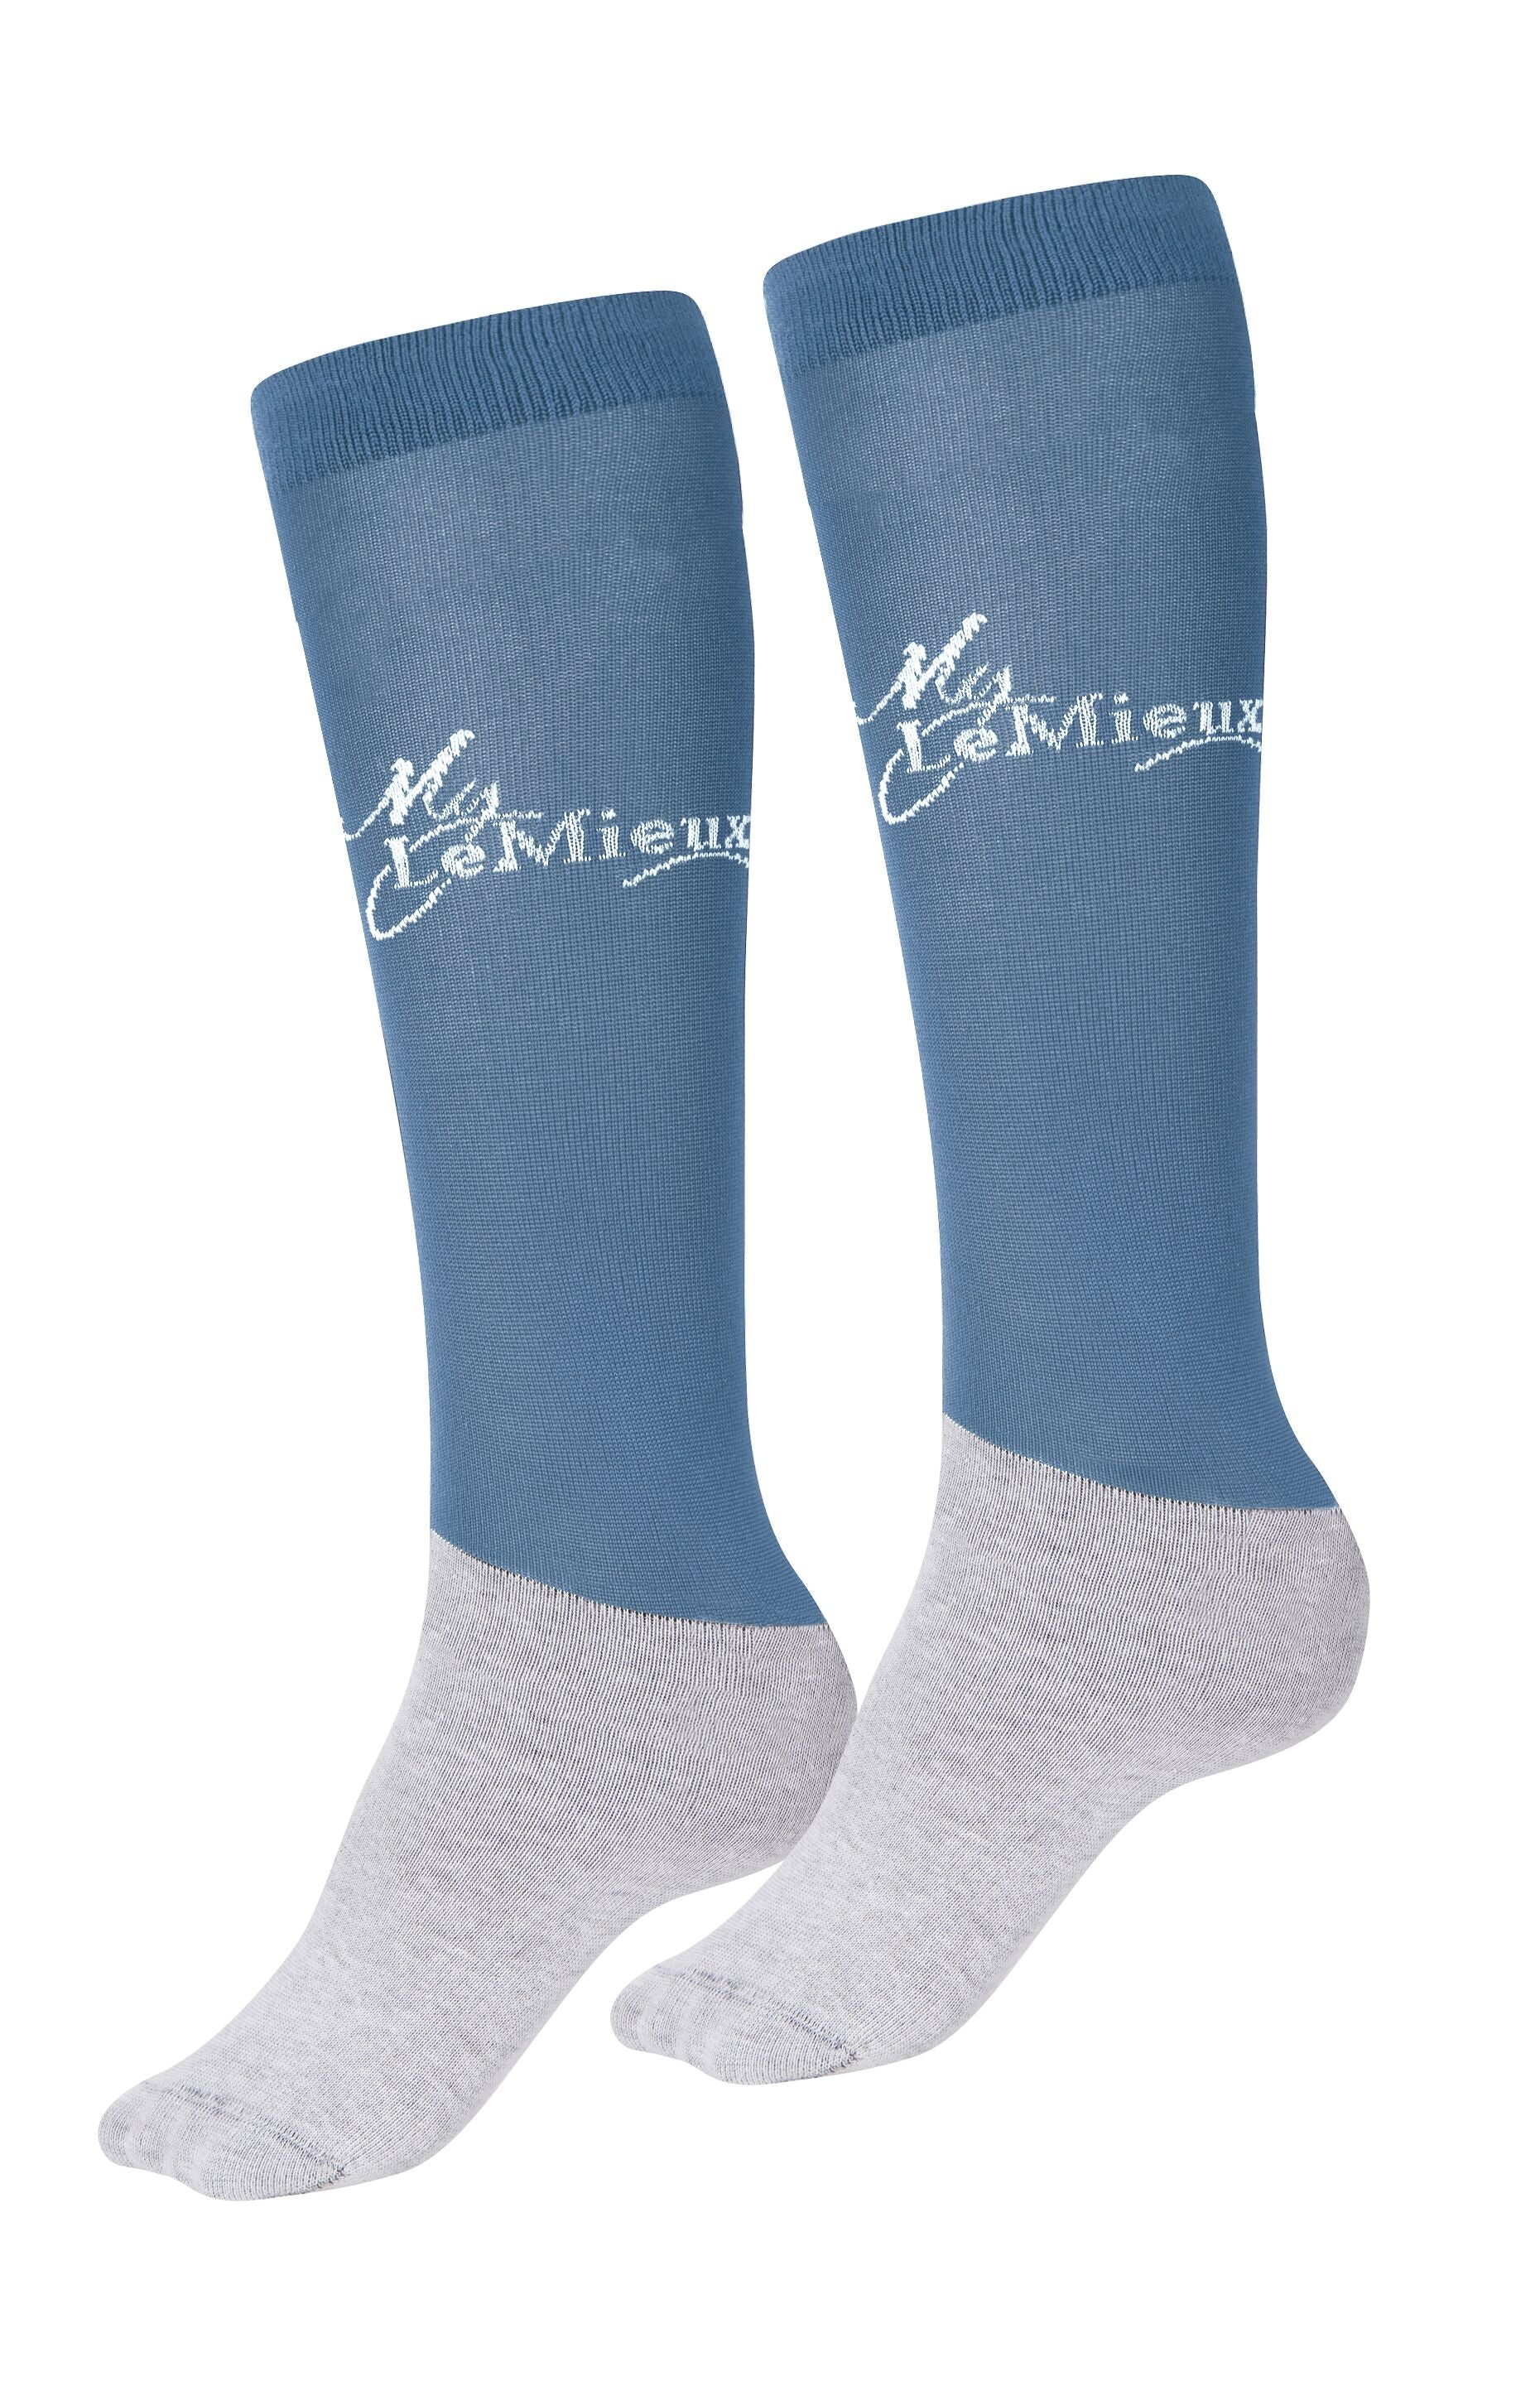 Fair Price Equestrian | LeMieux Competition Socks (Twin Pack)